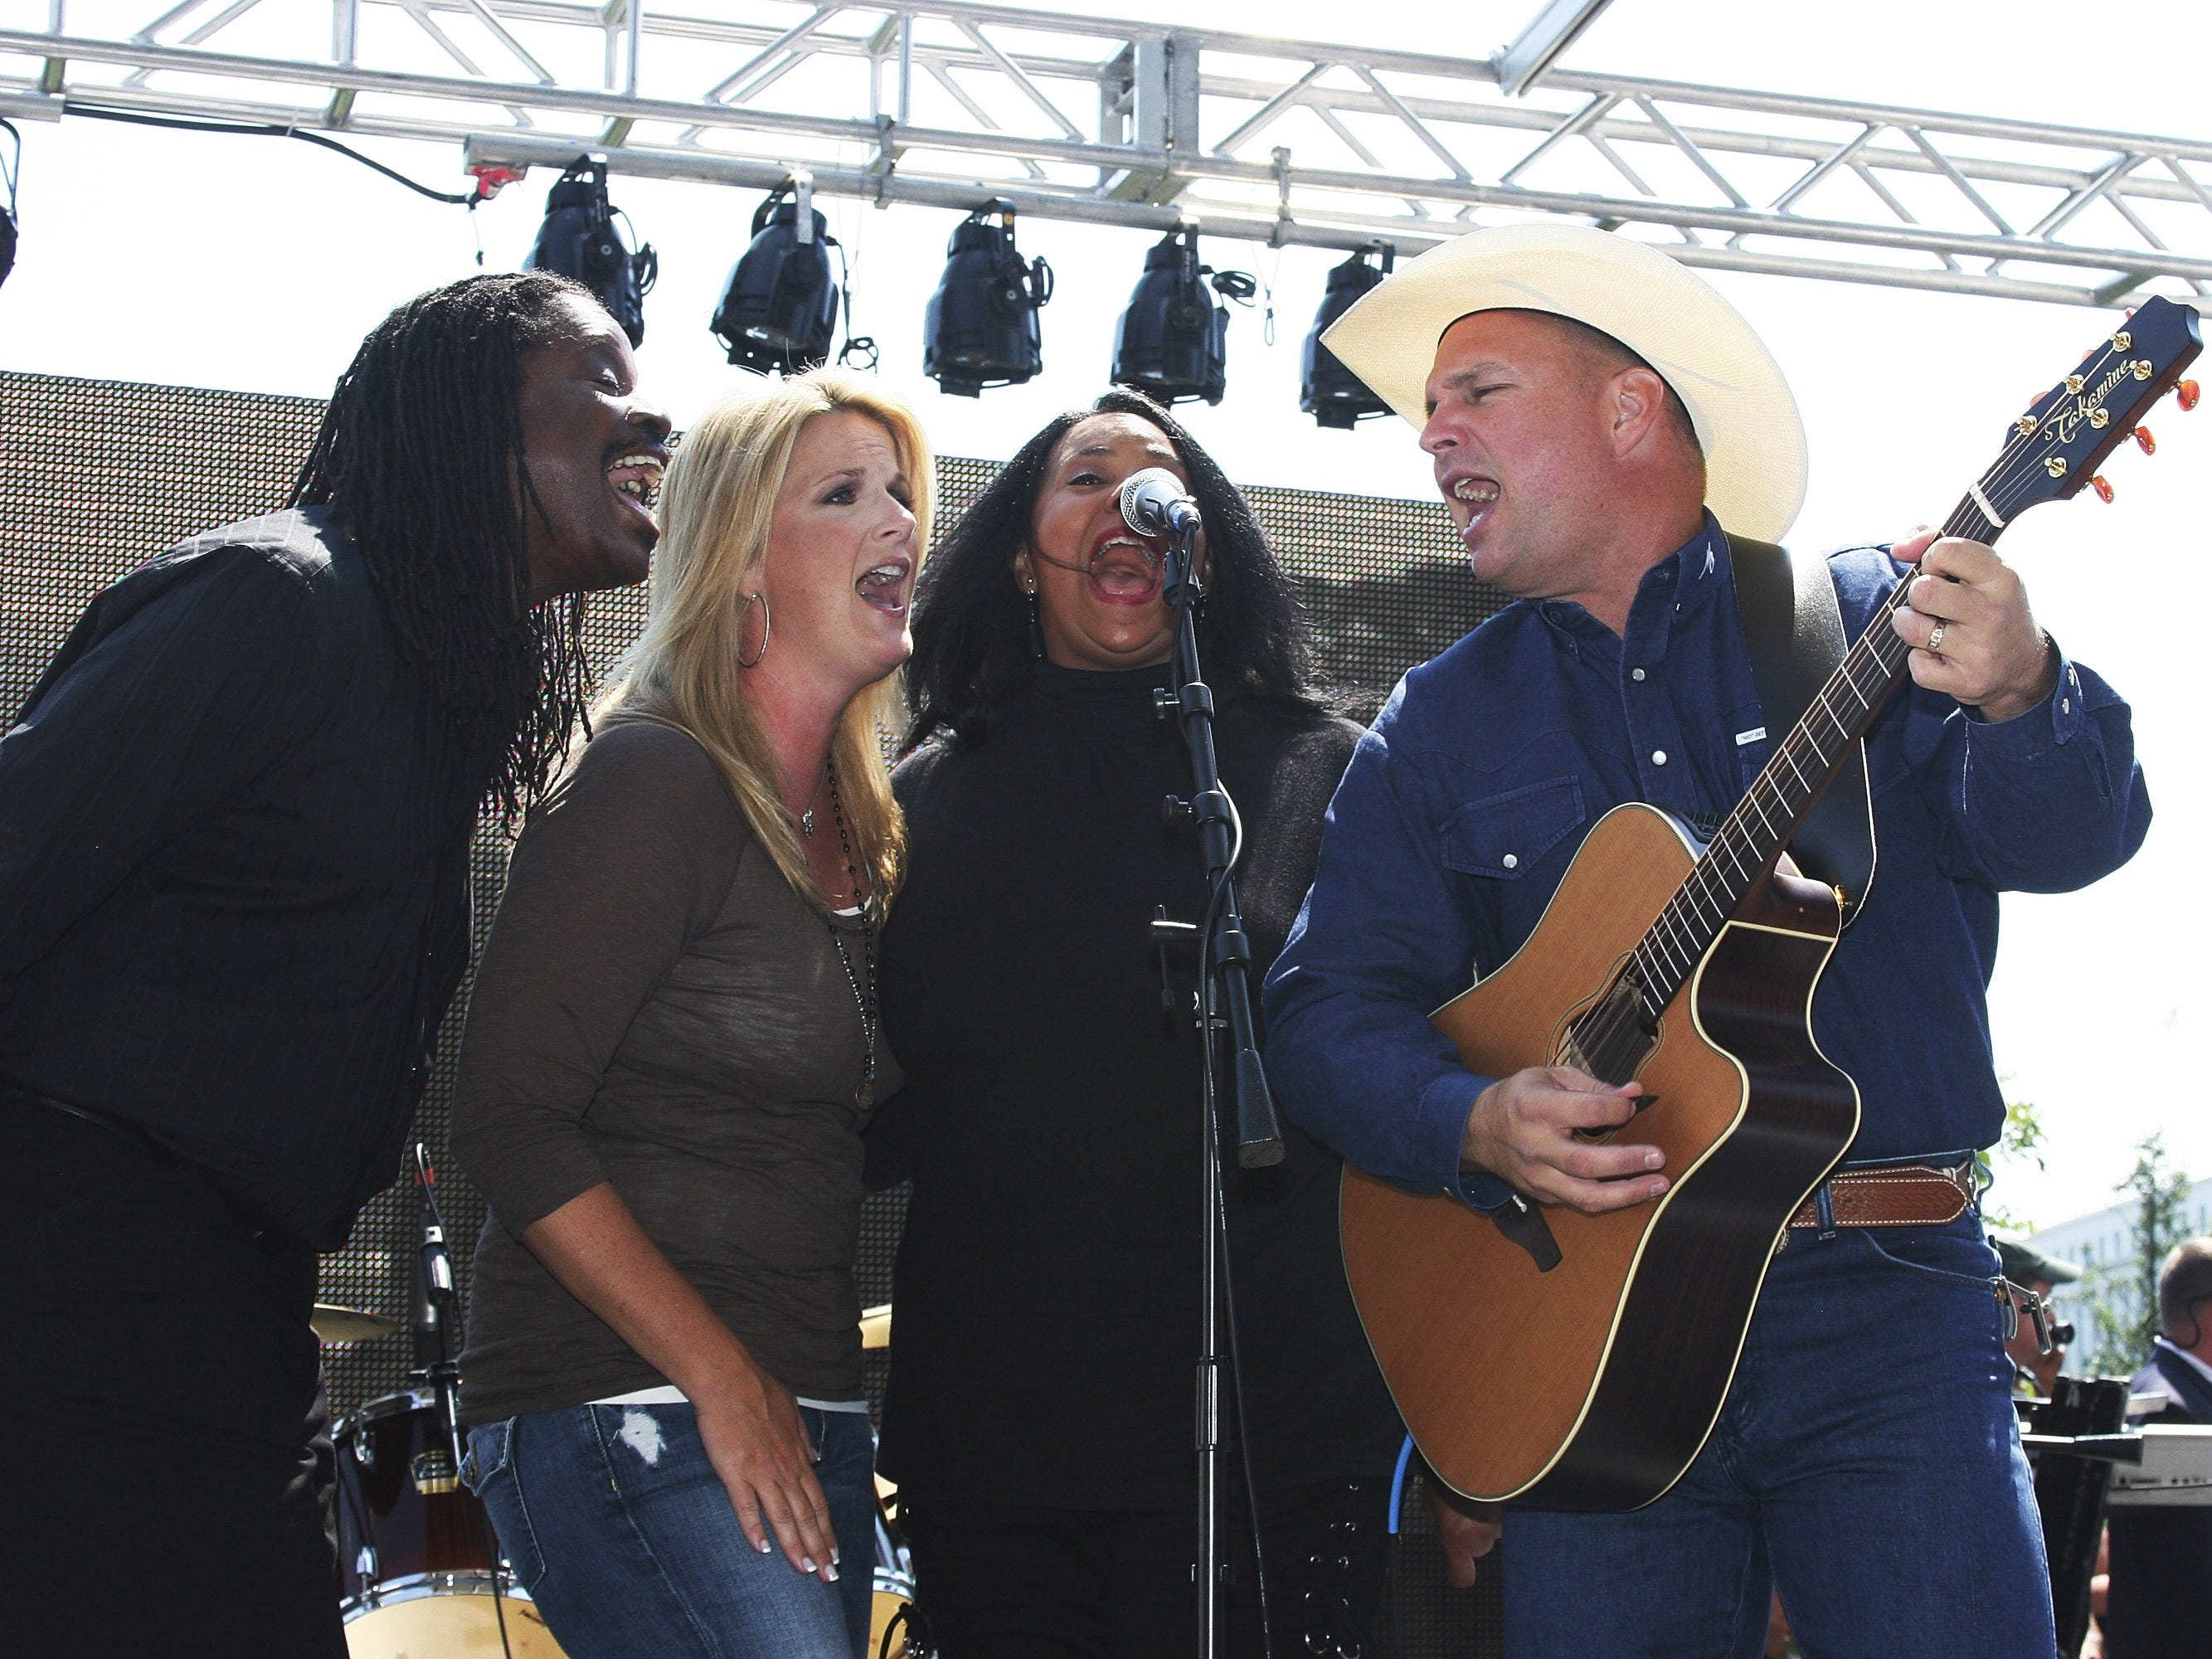 Trisha Yearwood (2nd L) and Garth Brooks (R) perform at the Live Earth show at the National Museum of the American Indian on July 7, 2007 in Washington, DC.  (Photo by Roger Kisby/Getty Images)